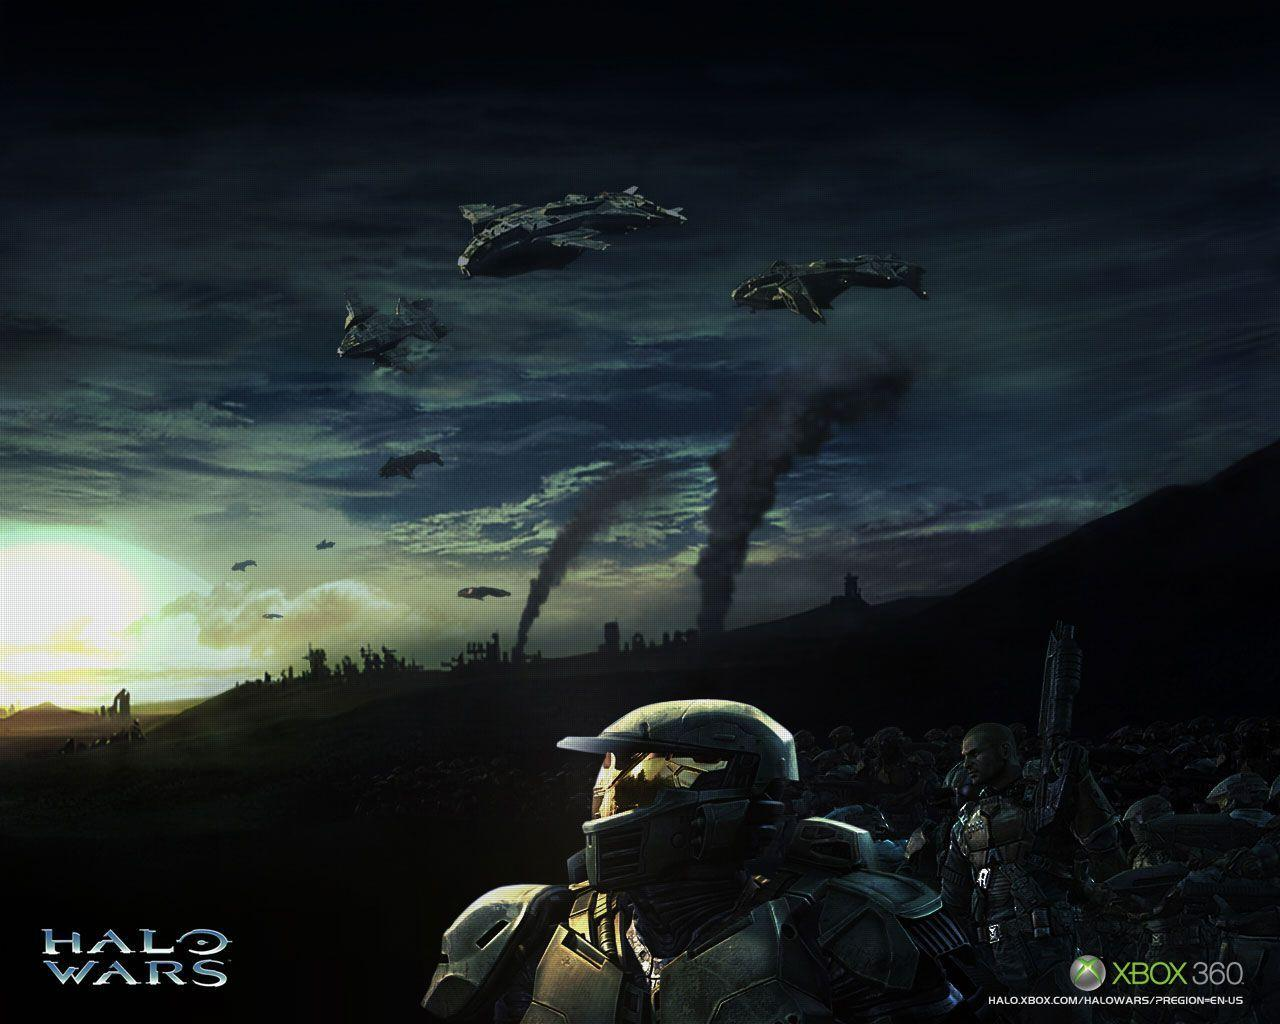 halo wars battles wallpaper - photo #13